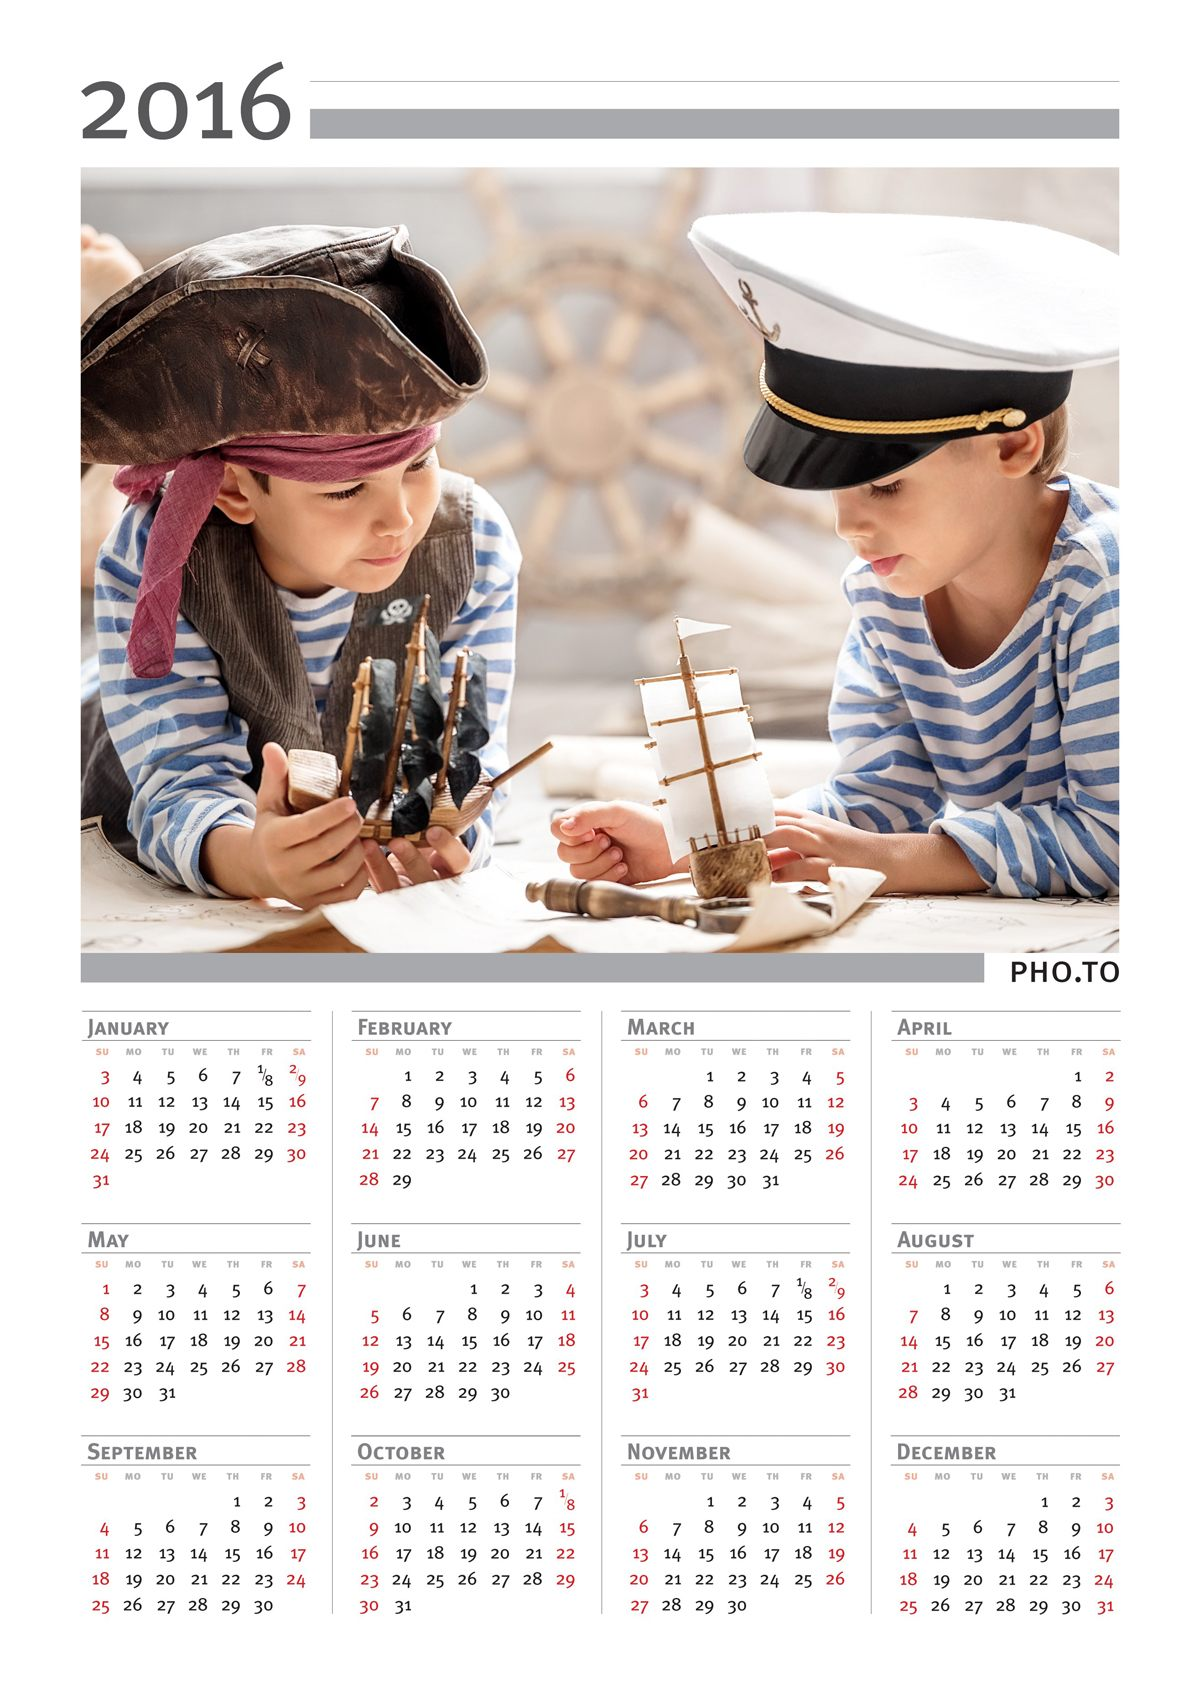 online-photo-calendar-maker.jpeg